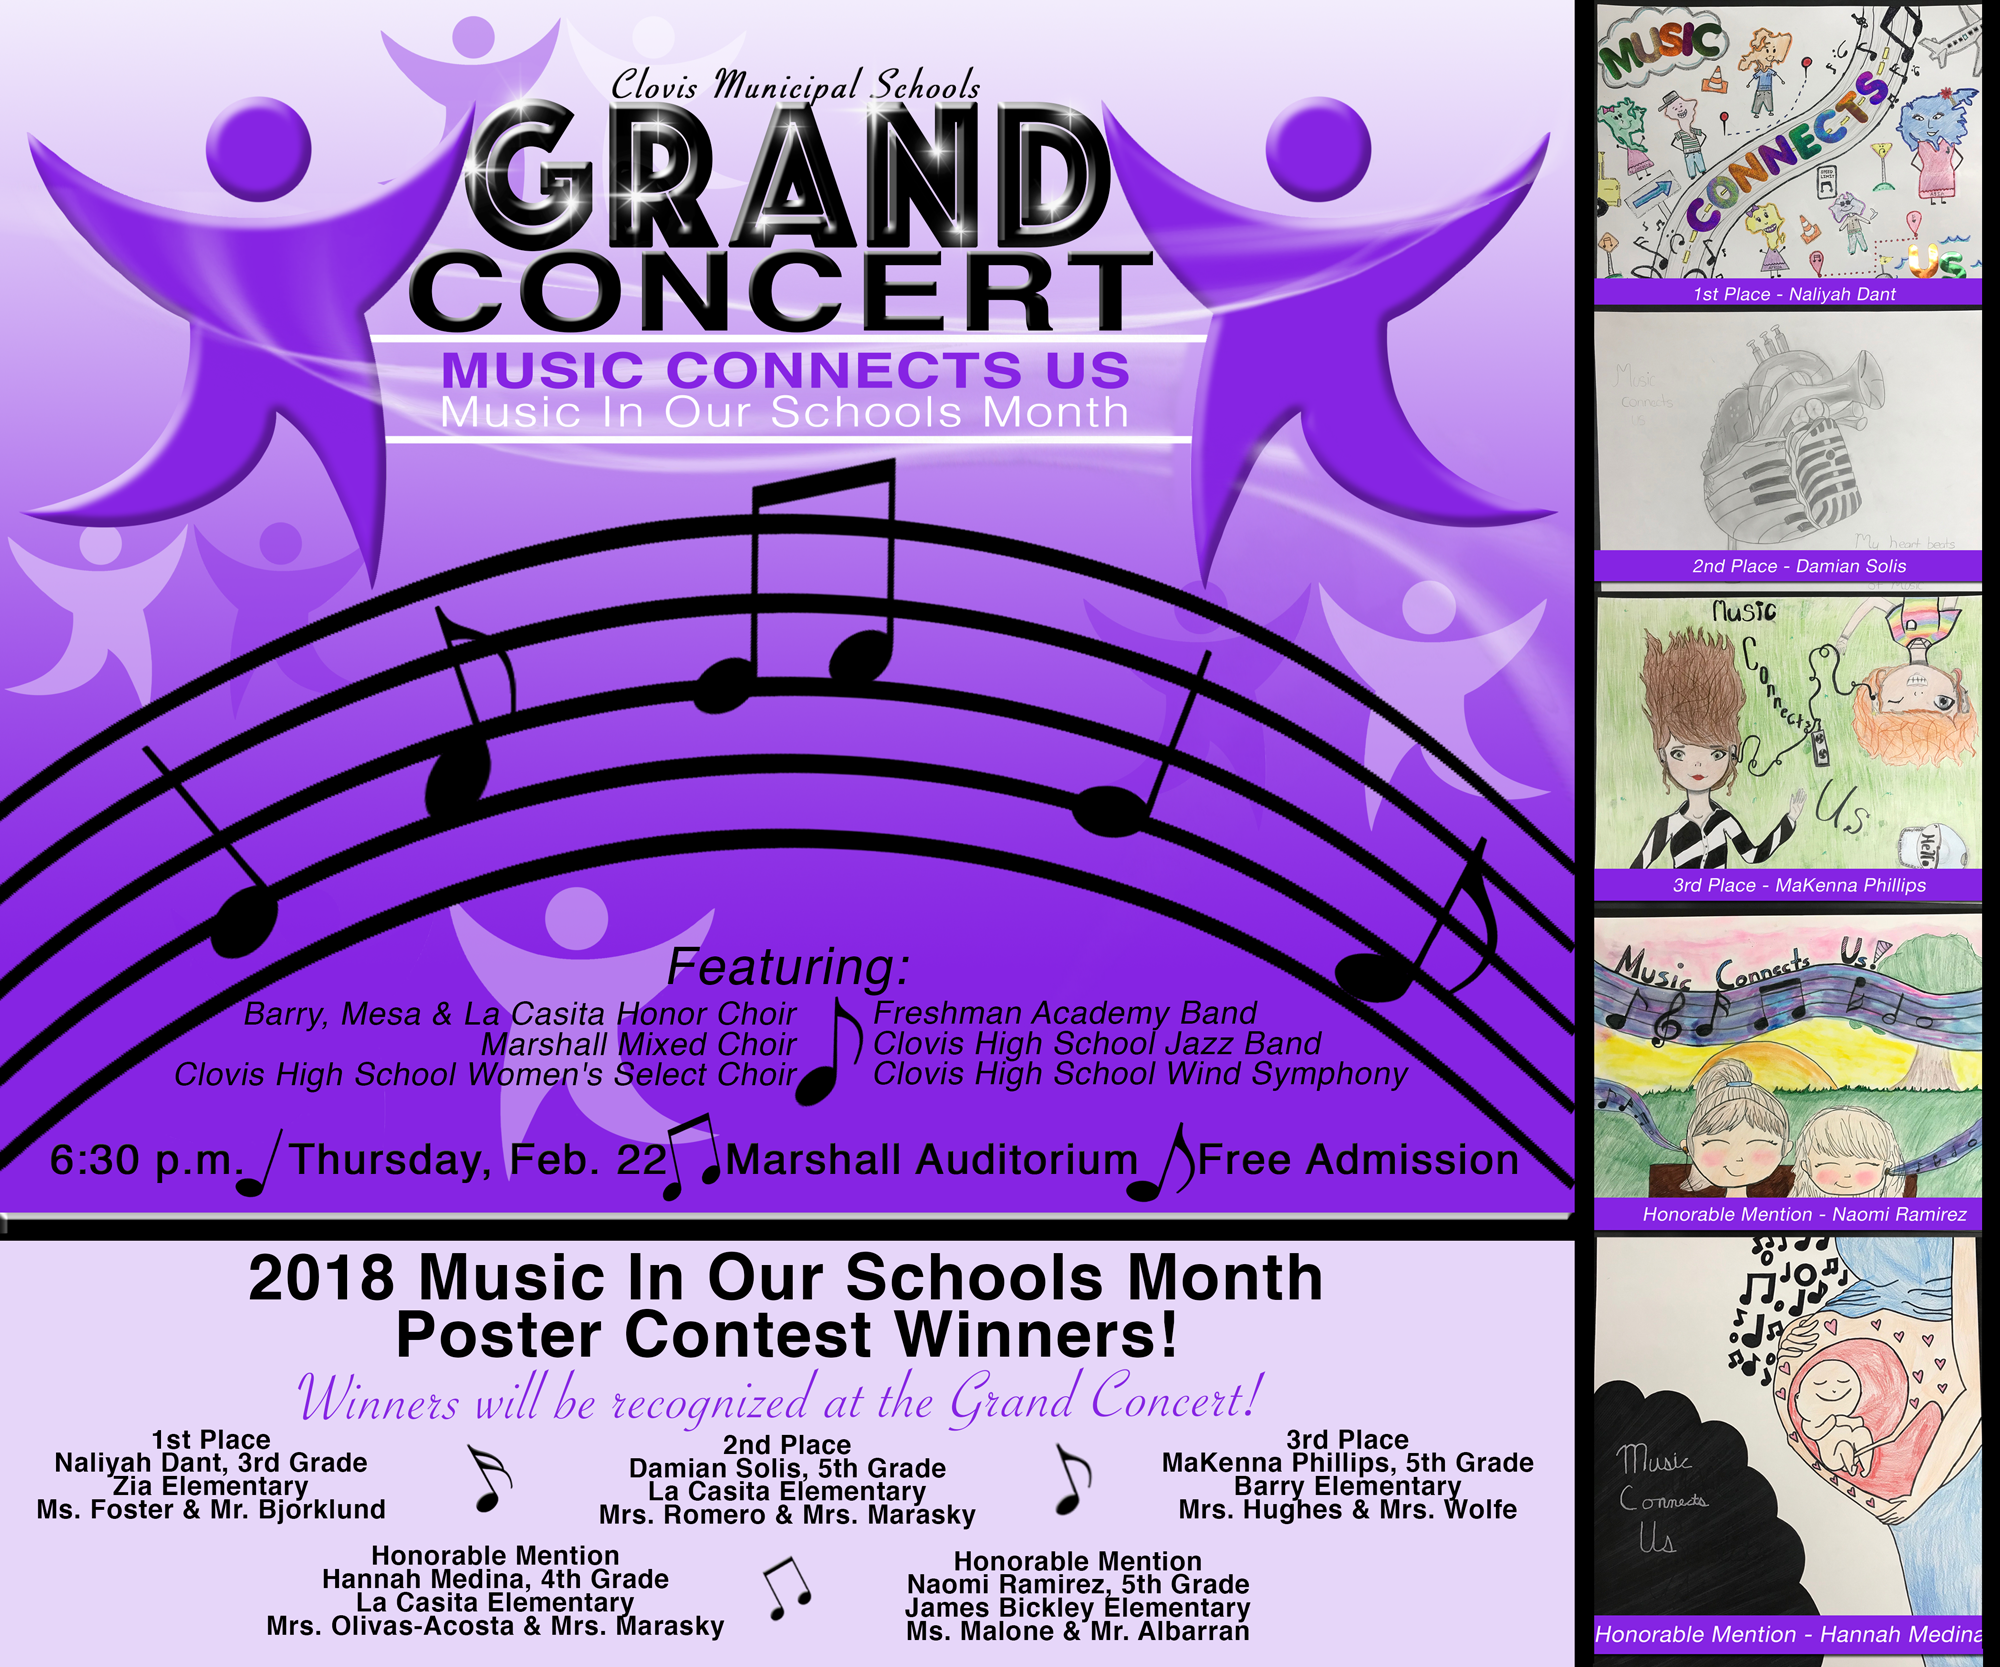 Image announcing grand concert and poster contest winners with text